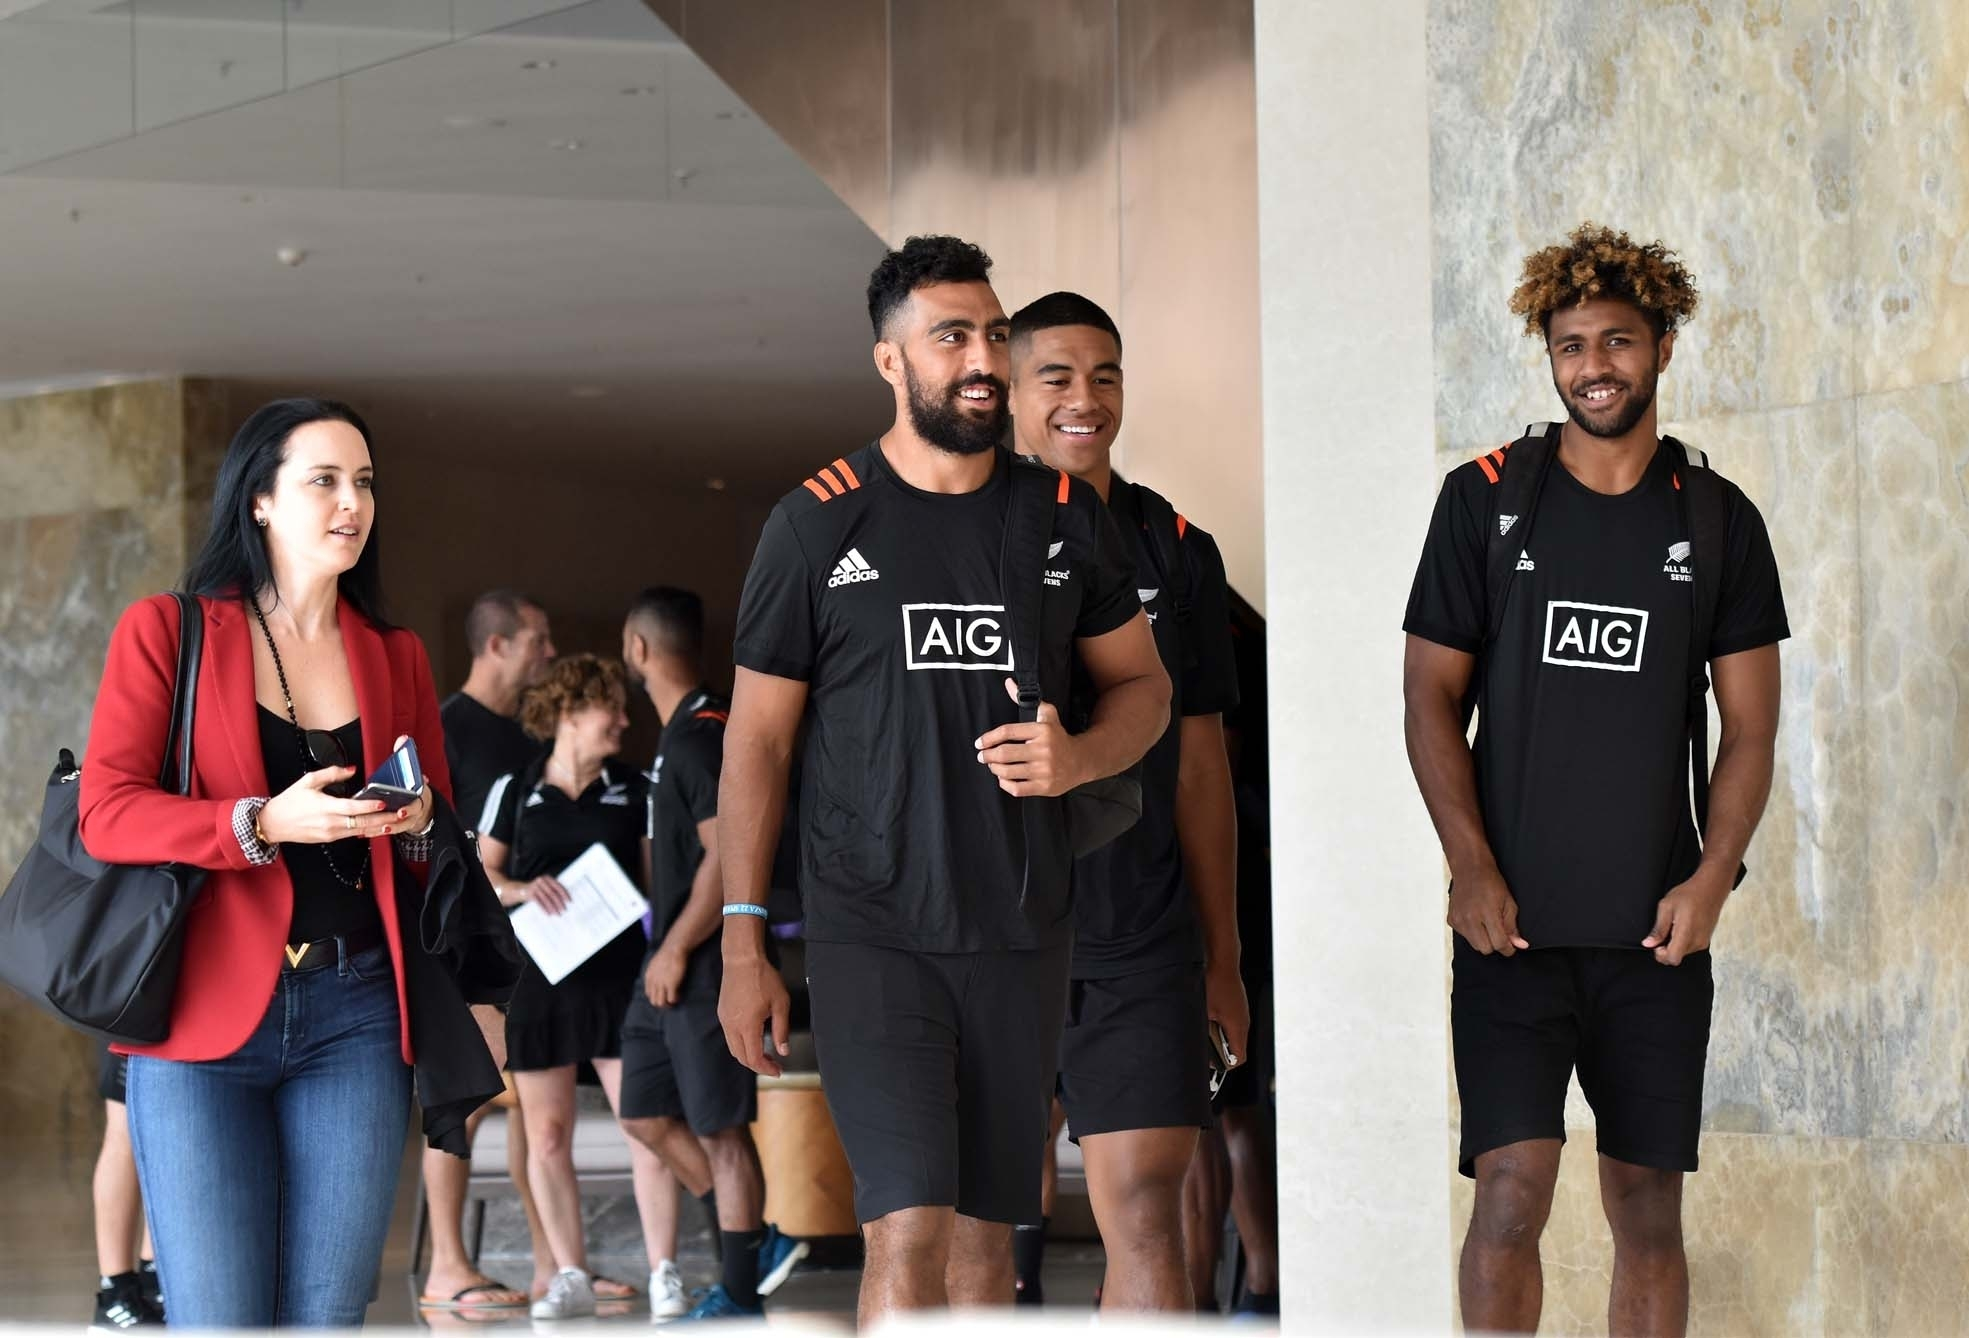 Waisake Masirewa (right) of New Zealand 7's team at the hotel in Hong Kong yesterday. New Zealand team is pooled together with Fiji,Russia and Samoa.Picture: RAMA